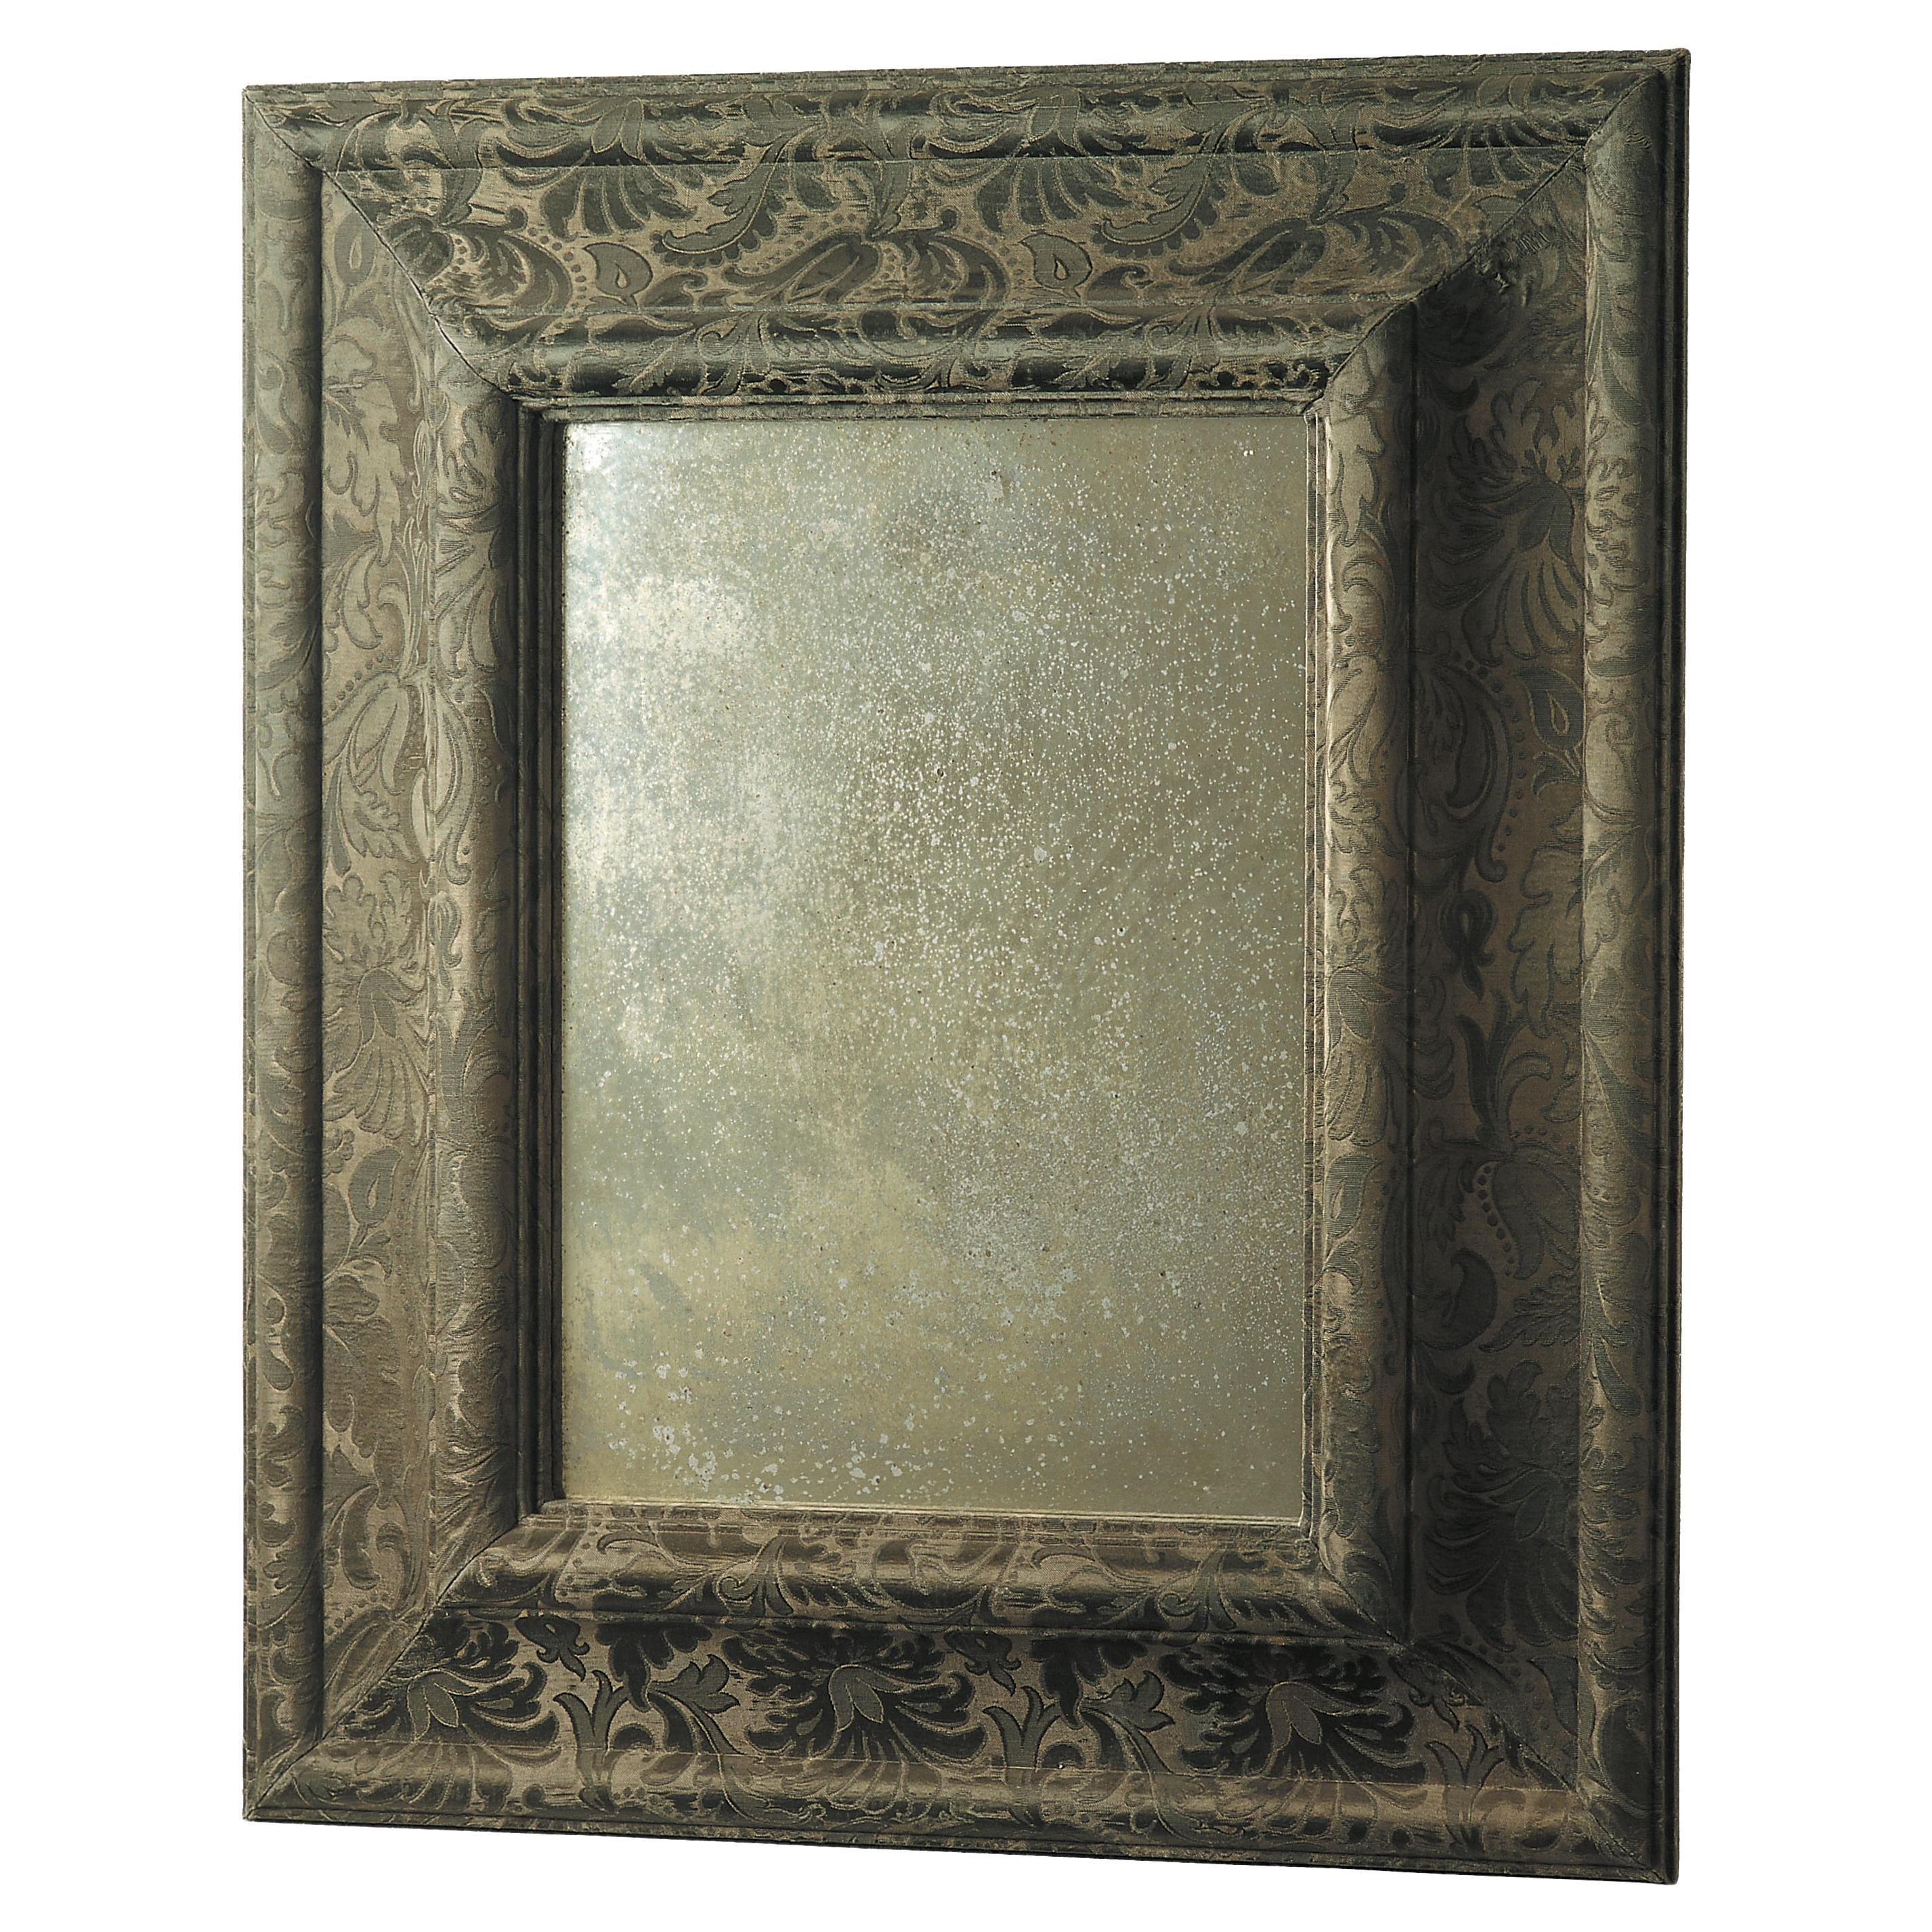 Mirror Wood Frame Wrapped in Fabric